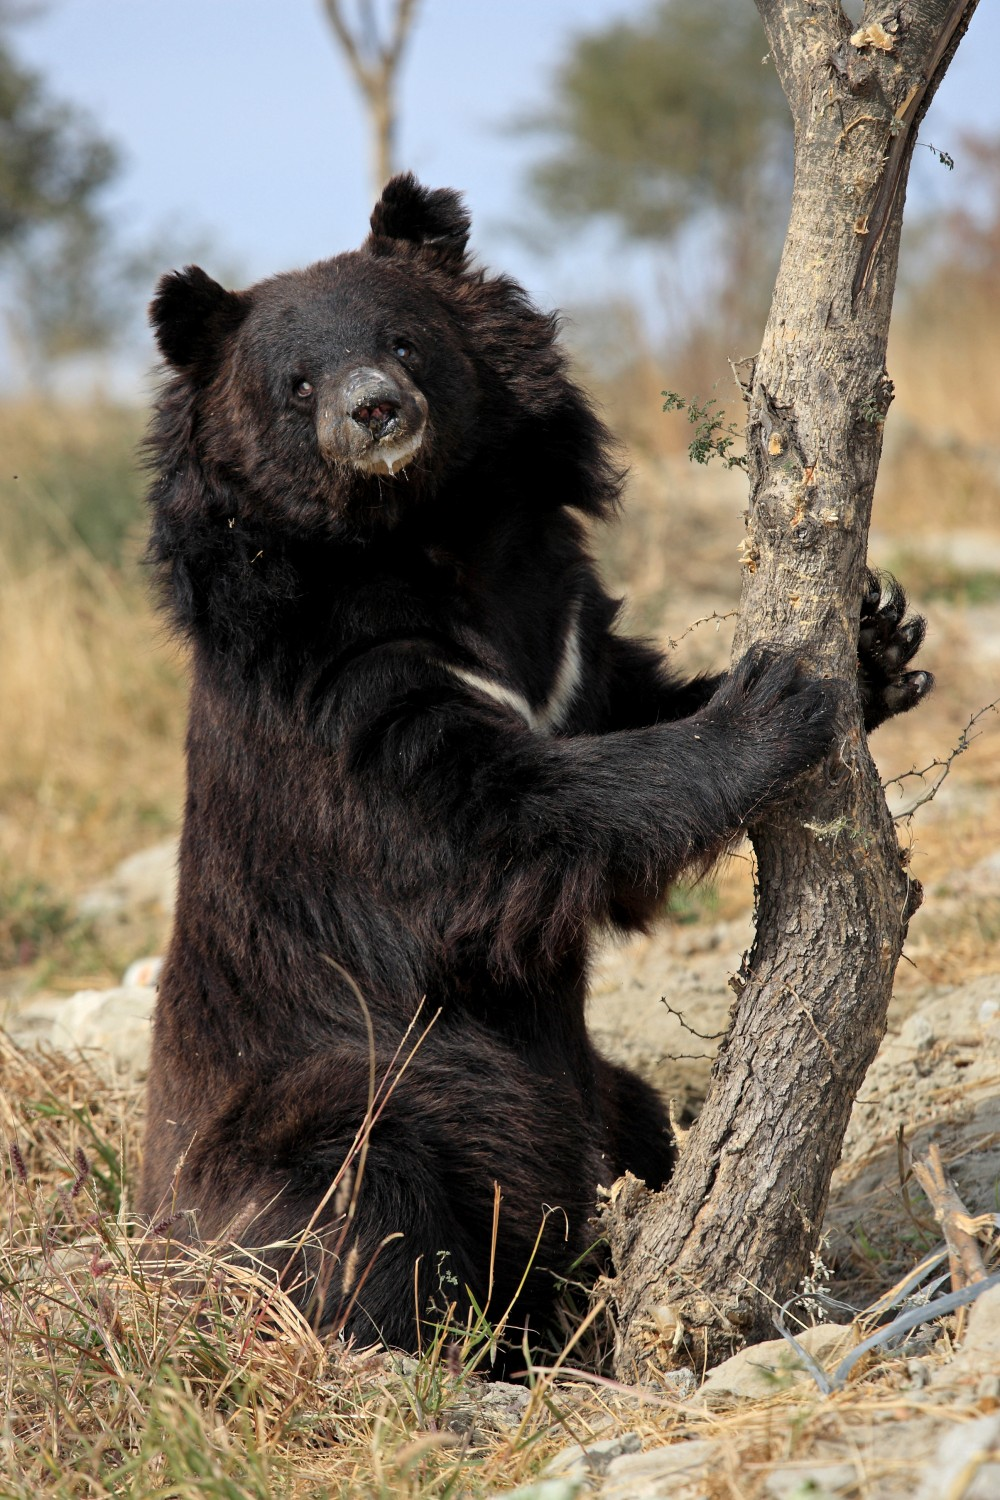 Chowti, a blind female asiatic bear, was used in the bear baiting trade. Her owner refused to give her up for an alternative liveihood and BRC were forced to confiscate her.